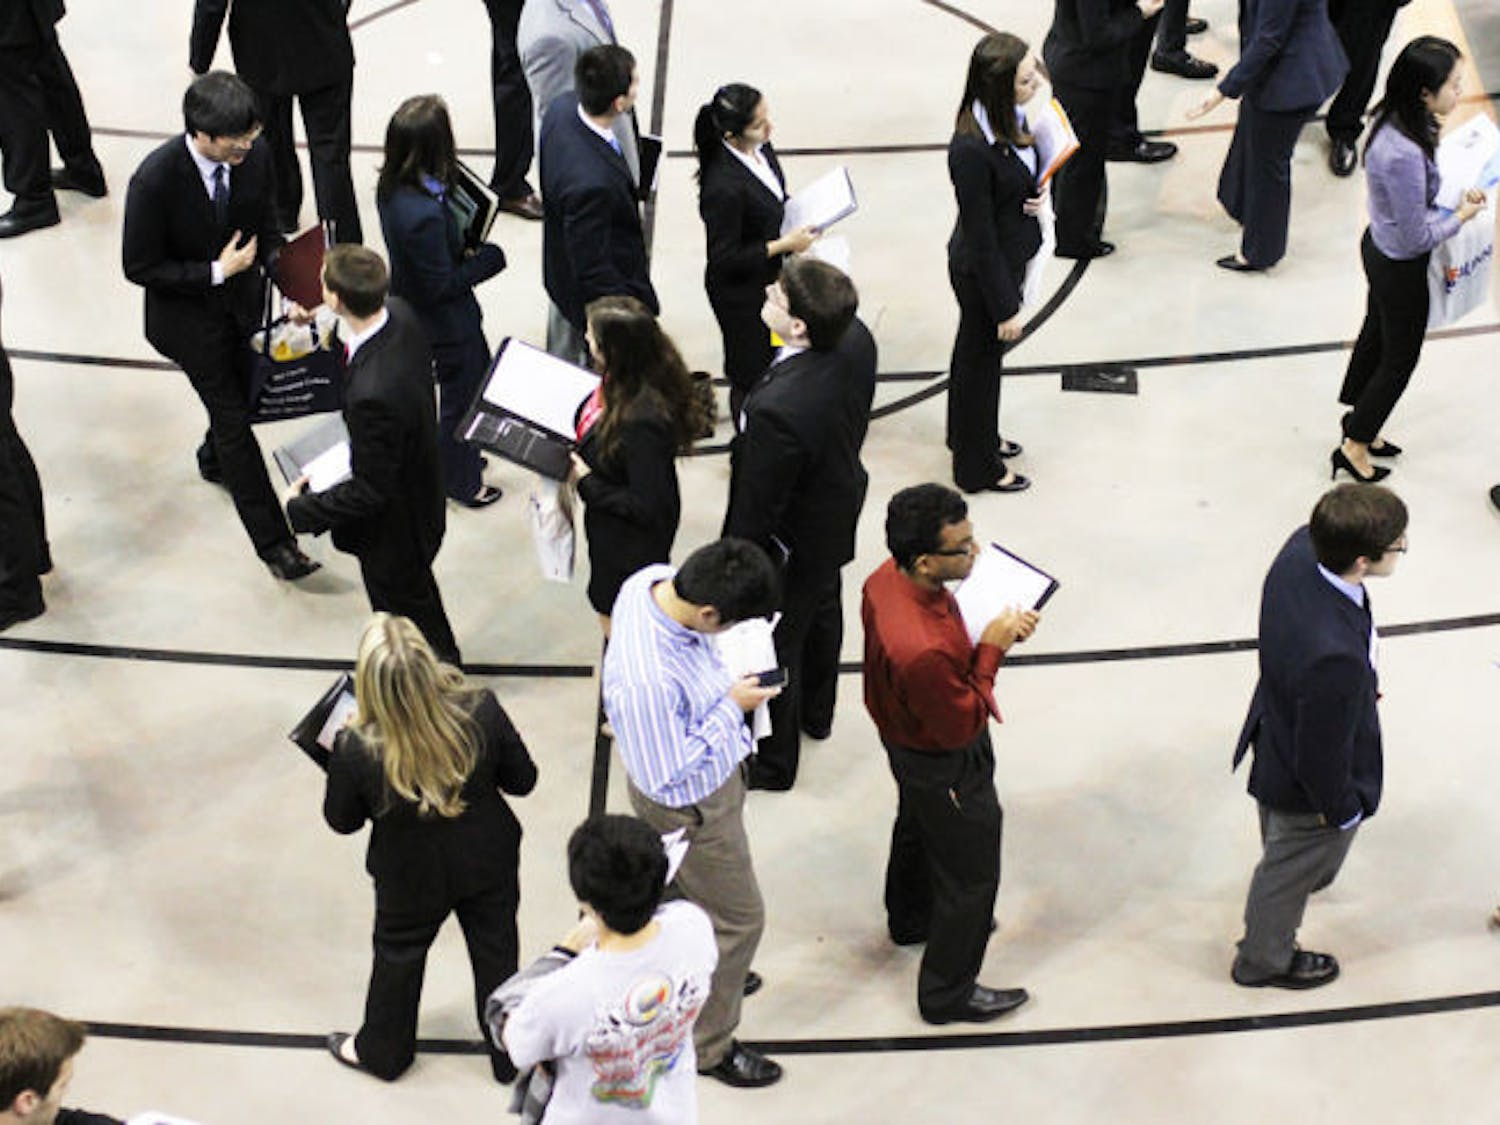 Students and alumni wait in line for the Career Showcase Non-Technical Day in the Stephen C. O'Connell Center on Tuesday. Technical Day, today, is from 9 a.m. to 3 p.m. for students majoring in engineering, biology, computer sciences and other technical fields.